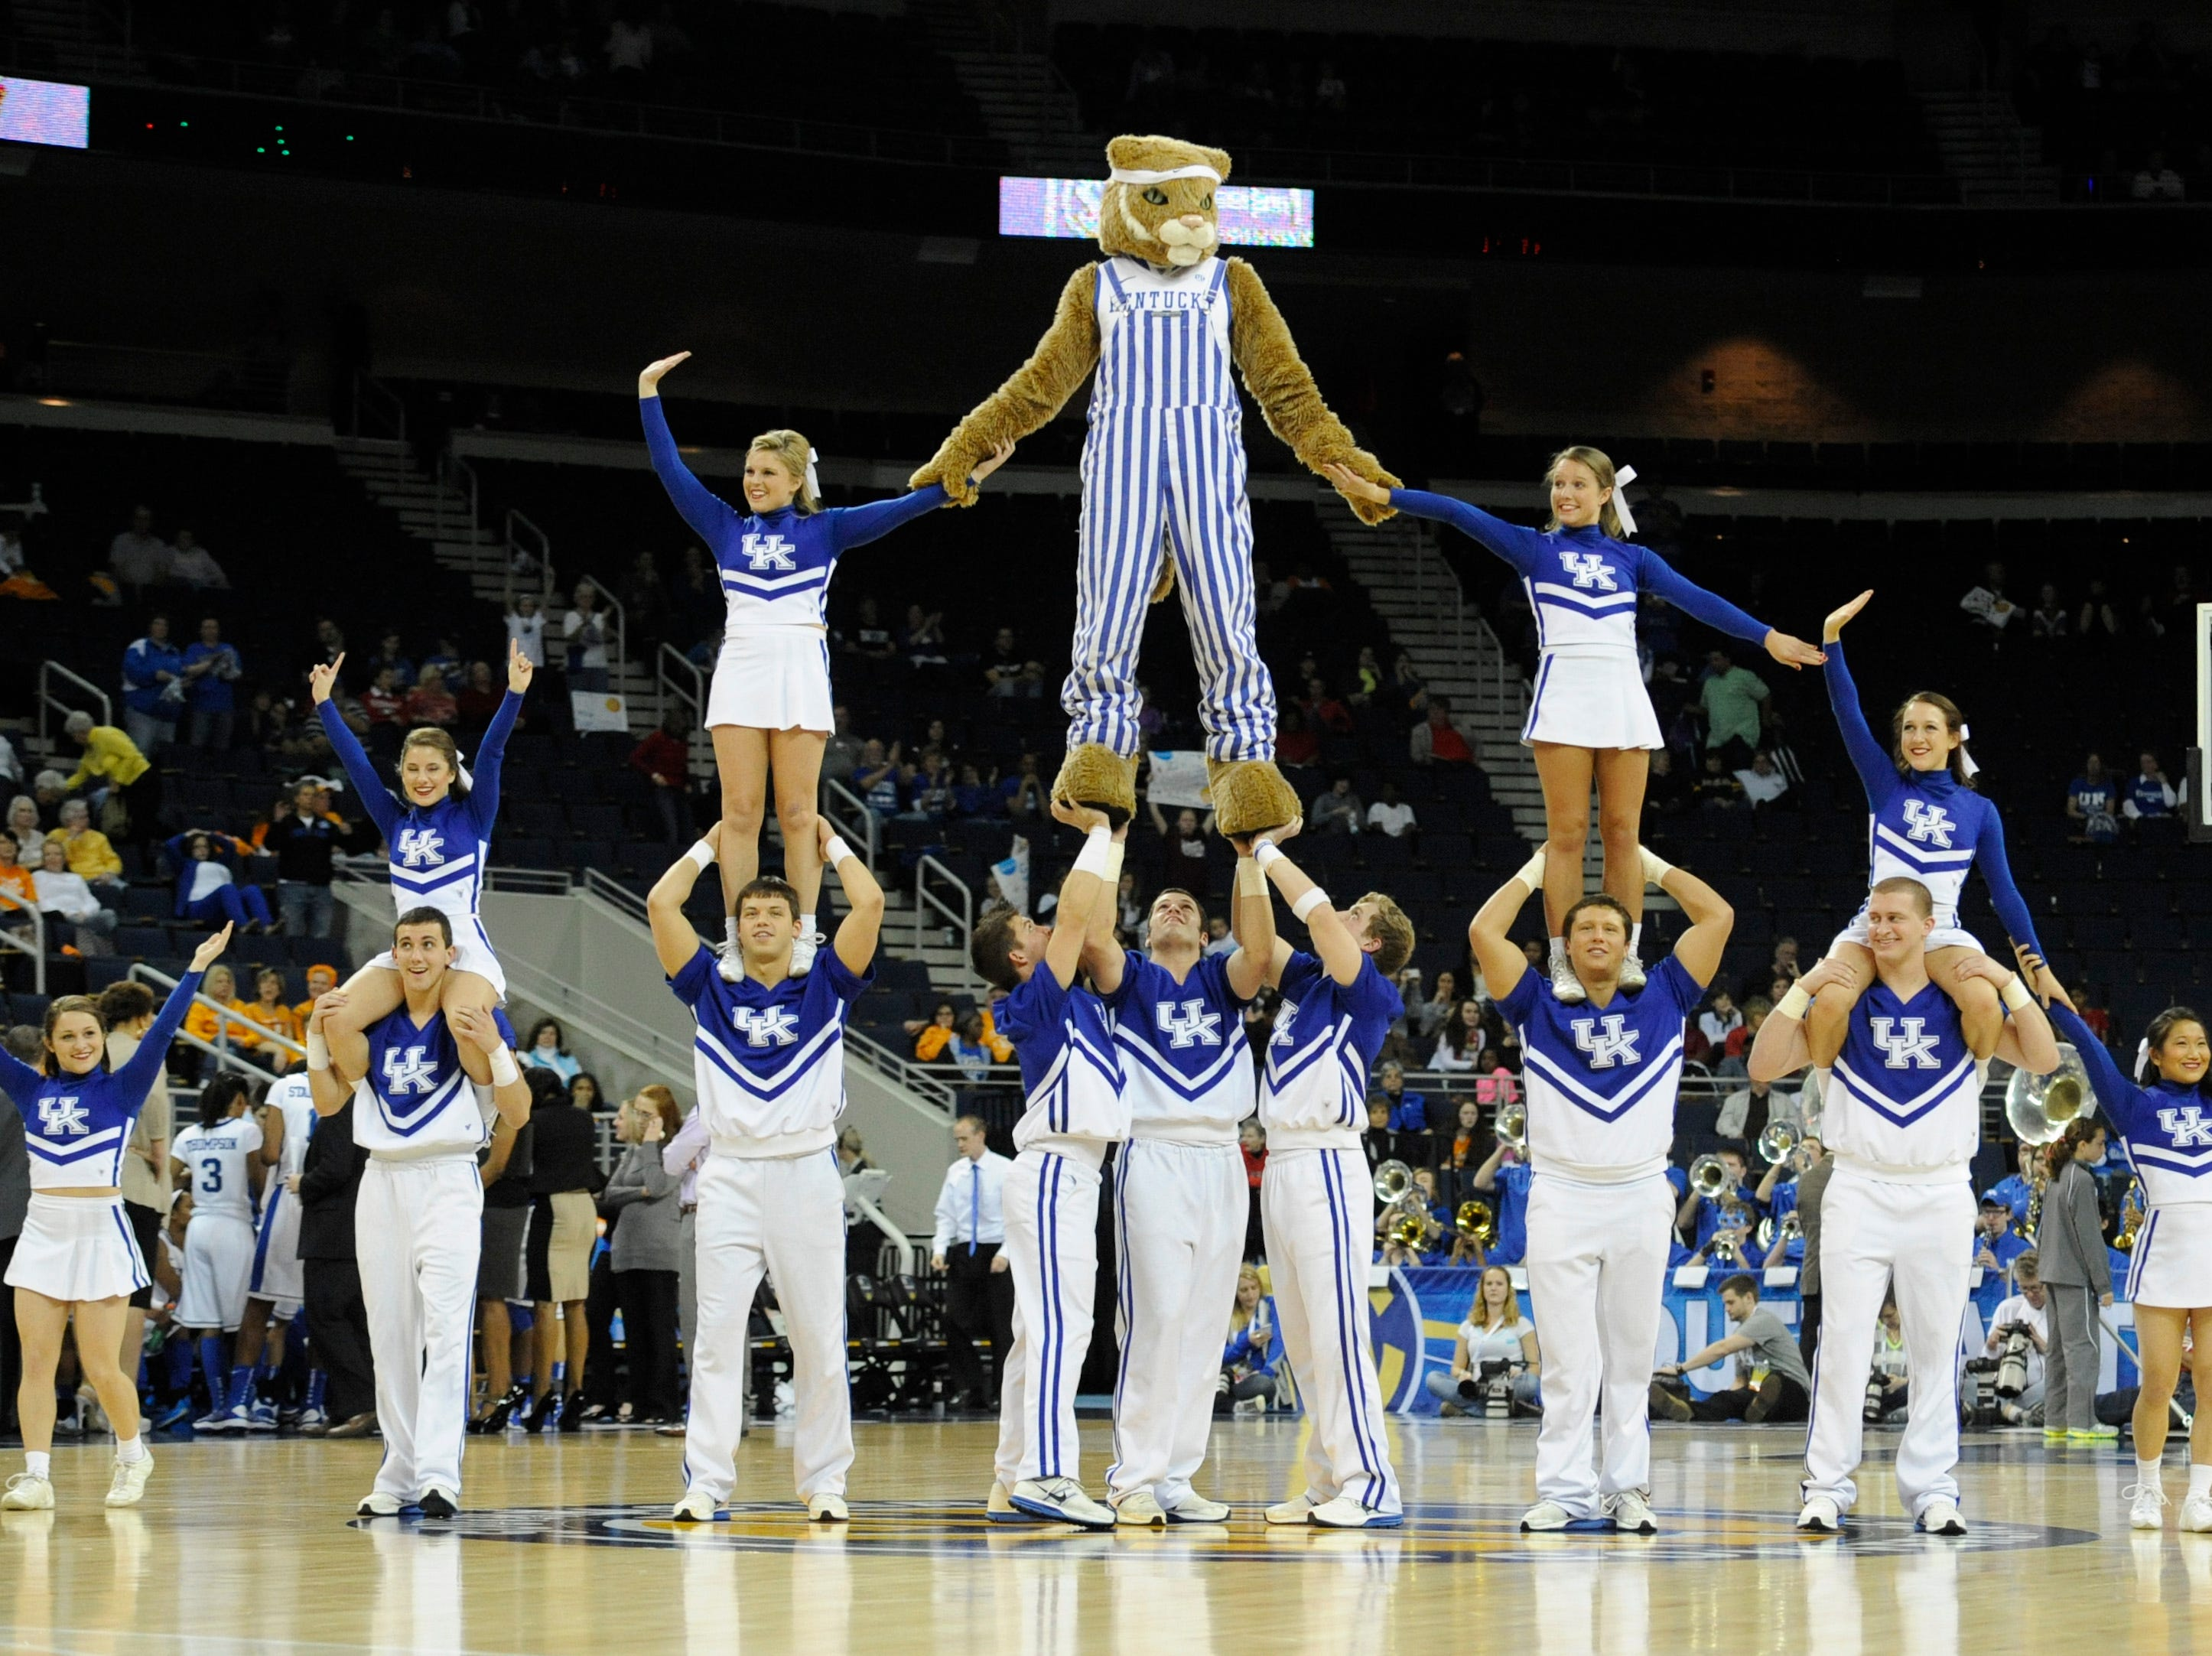 Kentucky cheerleaders perform during the second half of a NCAA college basketball game against Georgia in the Southeastern Conference tournament, Saturday, March 9, 2013, in Duluth, Ga. Kentucky won 60-38. (AP Photo/John Amis)